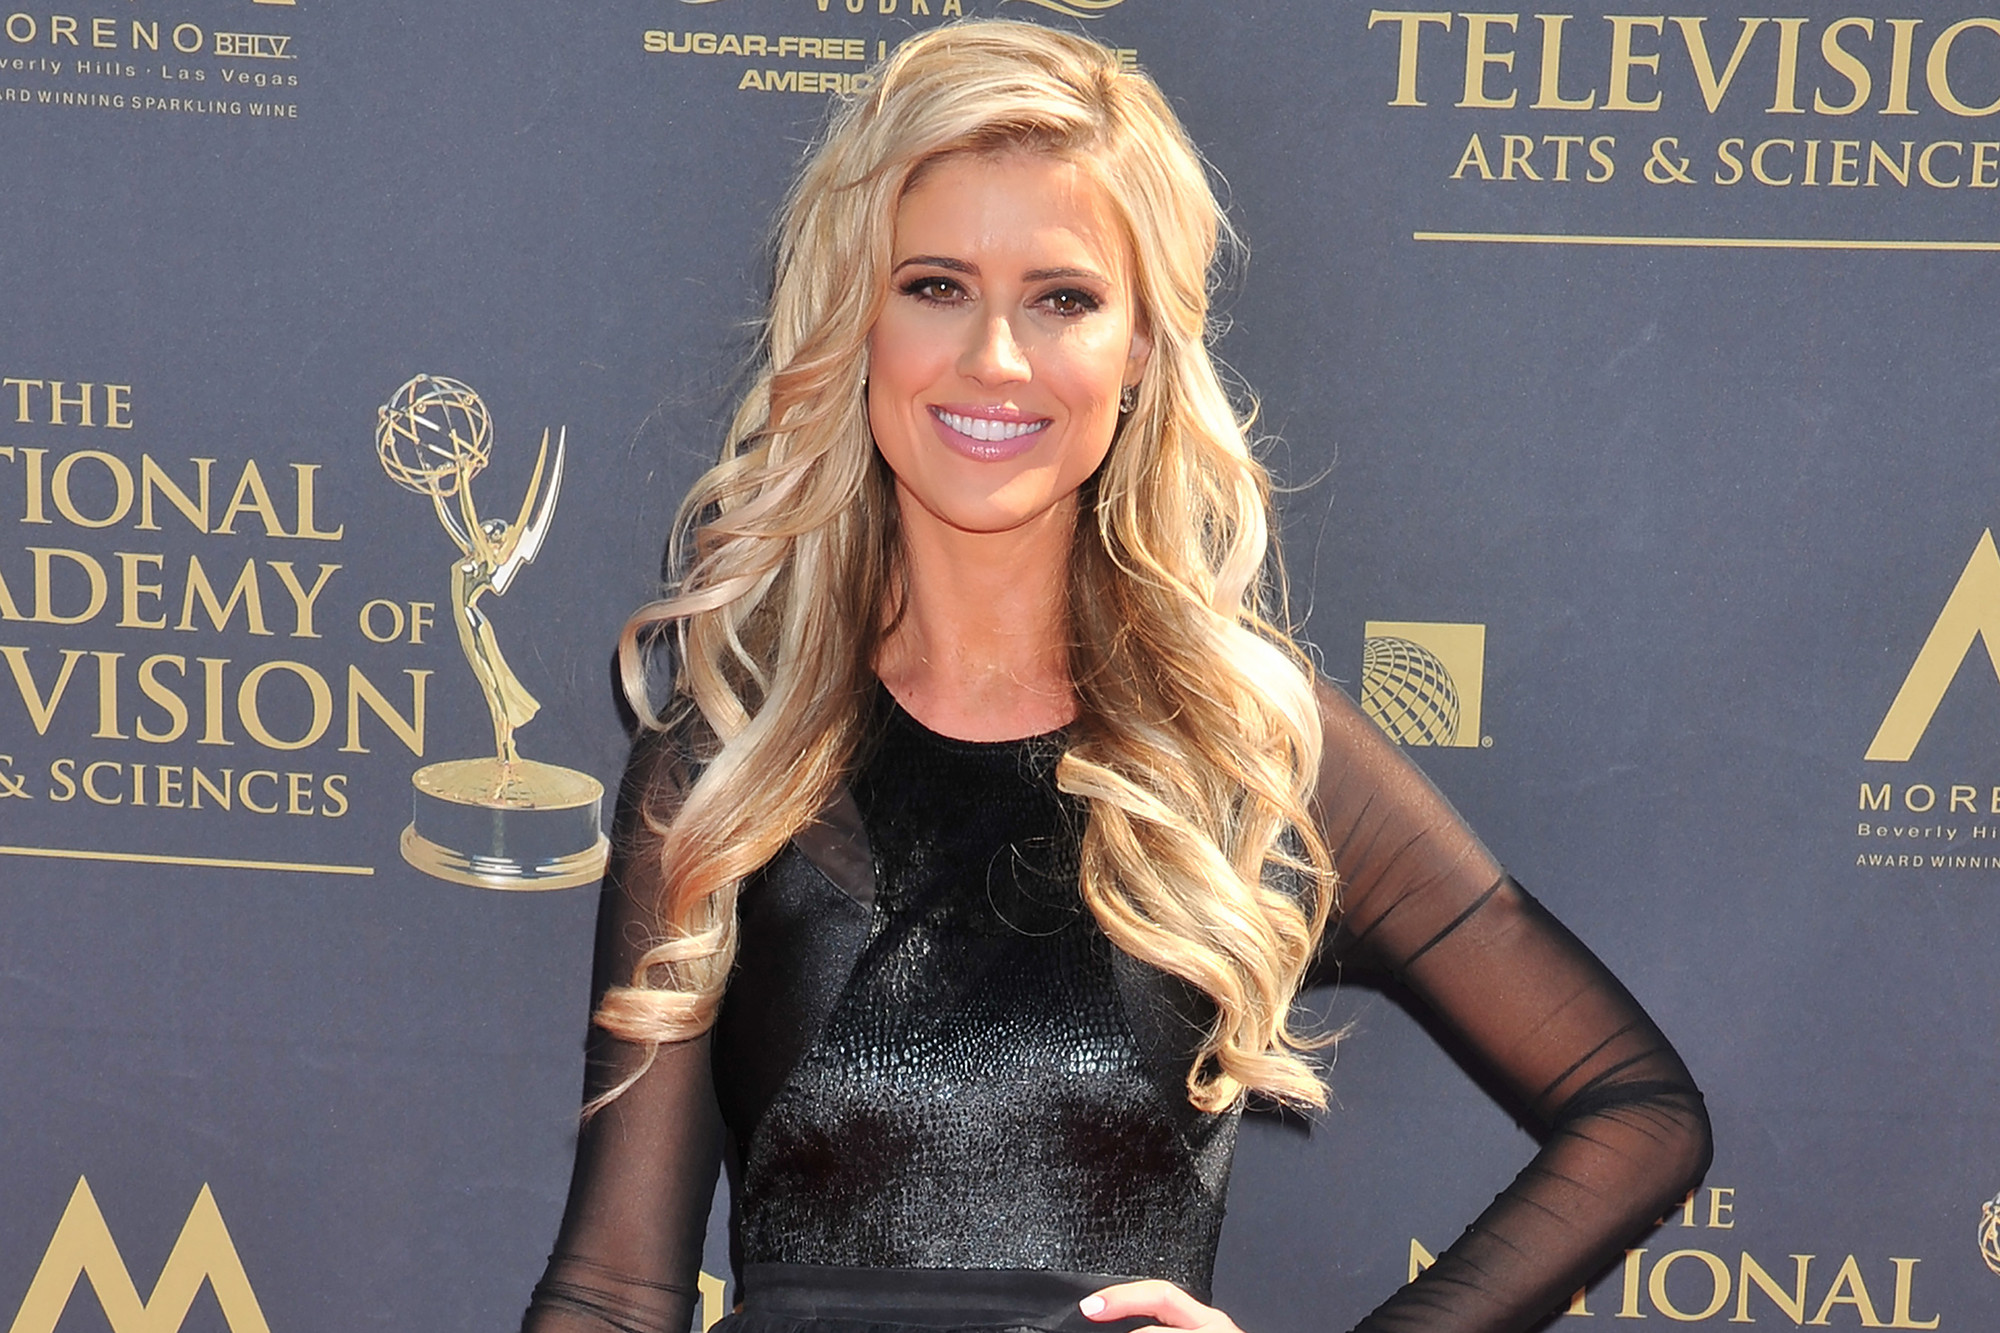 Christina El Moussa wearing a black dress and smiling at a Emmy Awards